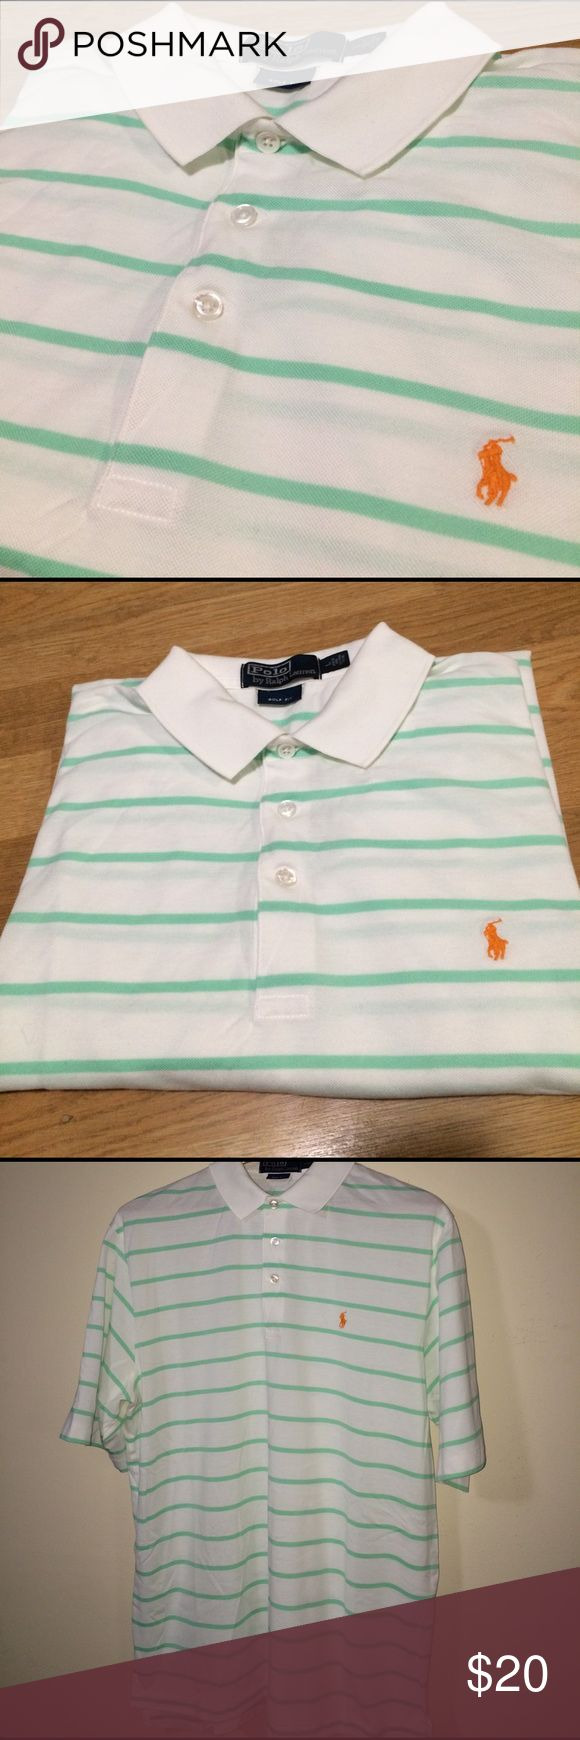 Polo Ralph Lauren Men's polo shirt. Like brand new In excellent, like brand new condition. White with a mint green stripe and orange Polo logo stitched on chest! Very unique Polo shirt.Golf fit. 100% Pima cotton. Polo by Ralph Lauren Shirts Polos